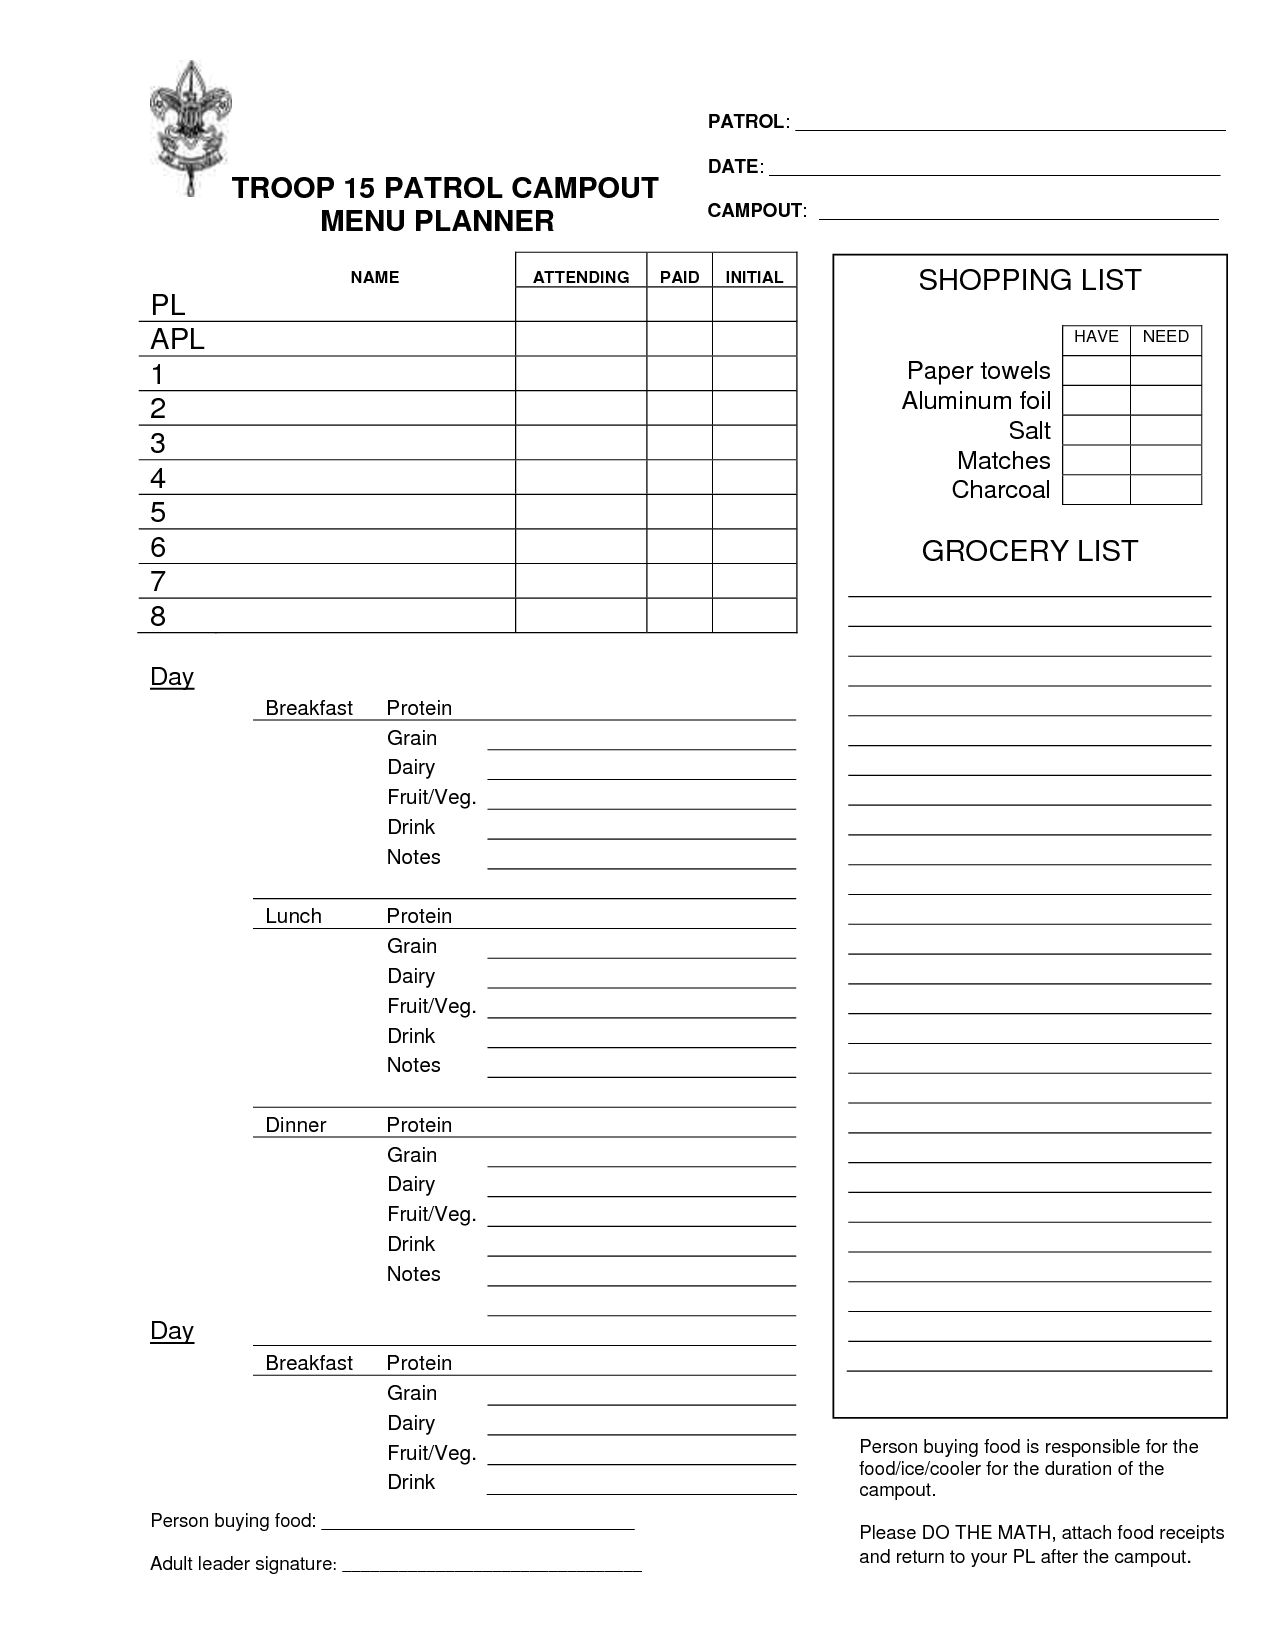 boy scout campout planning worksheet - Google Search | Scout Stuff ...